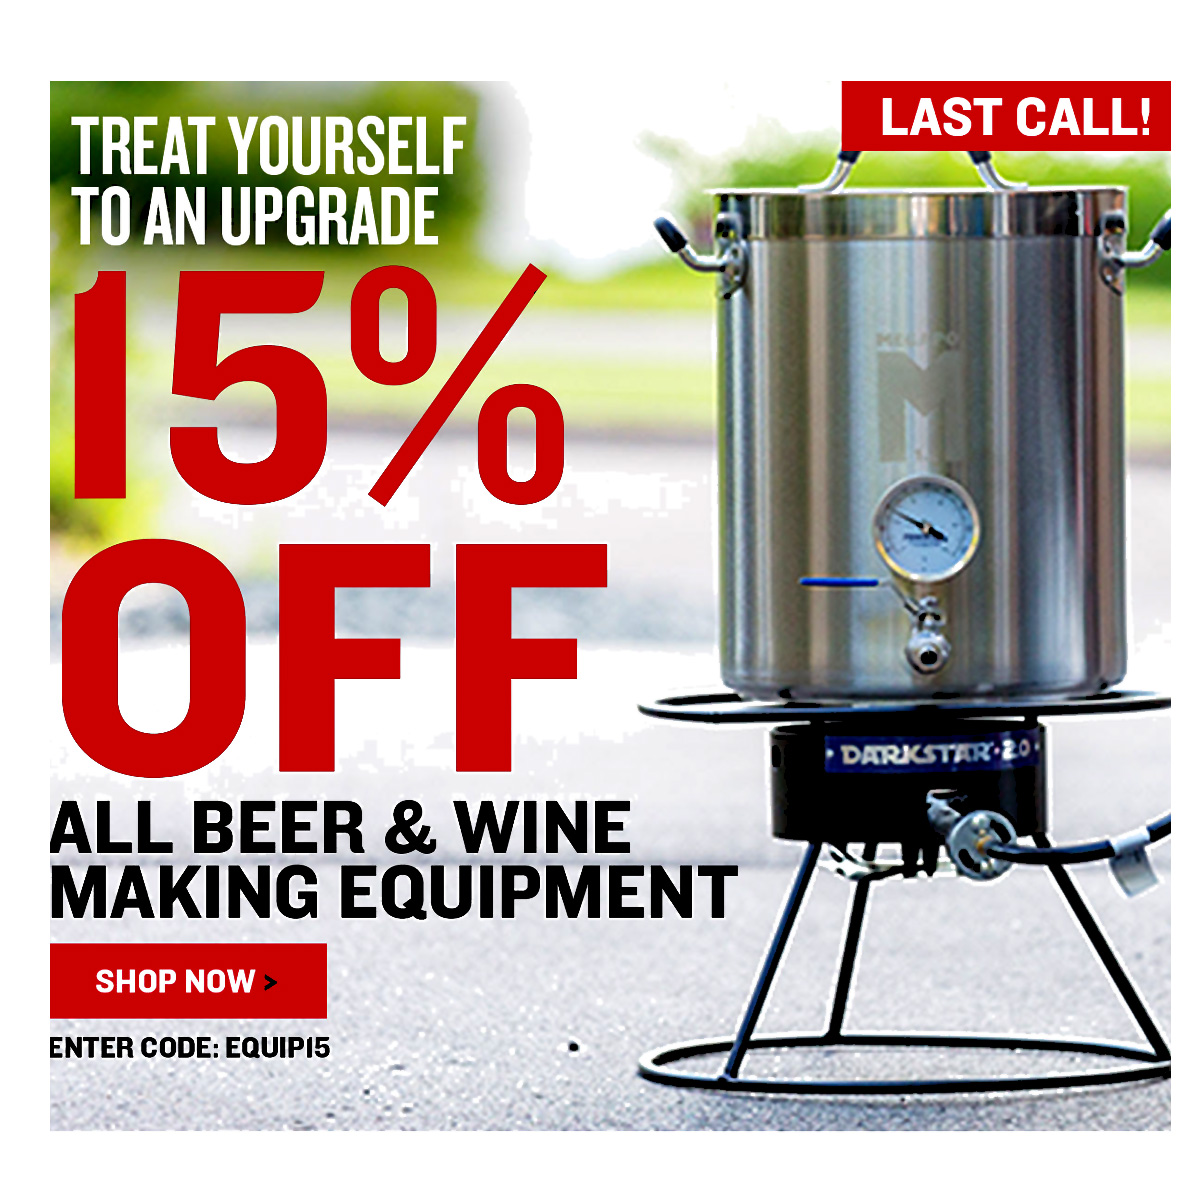 Home Wine Making Coupon Codes for Save 15% On Equipment at NorthernBrewer.com with Promo Code Coupon Code